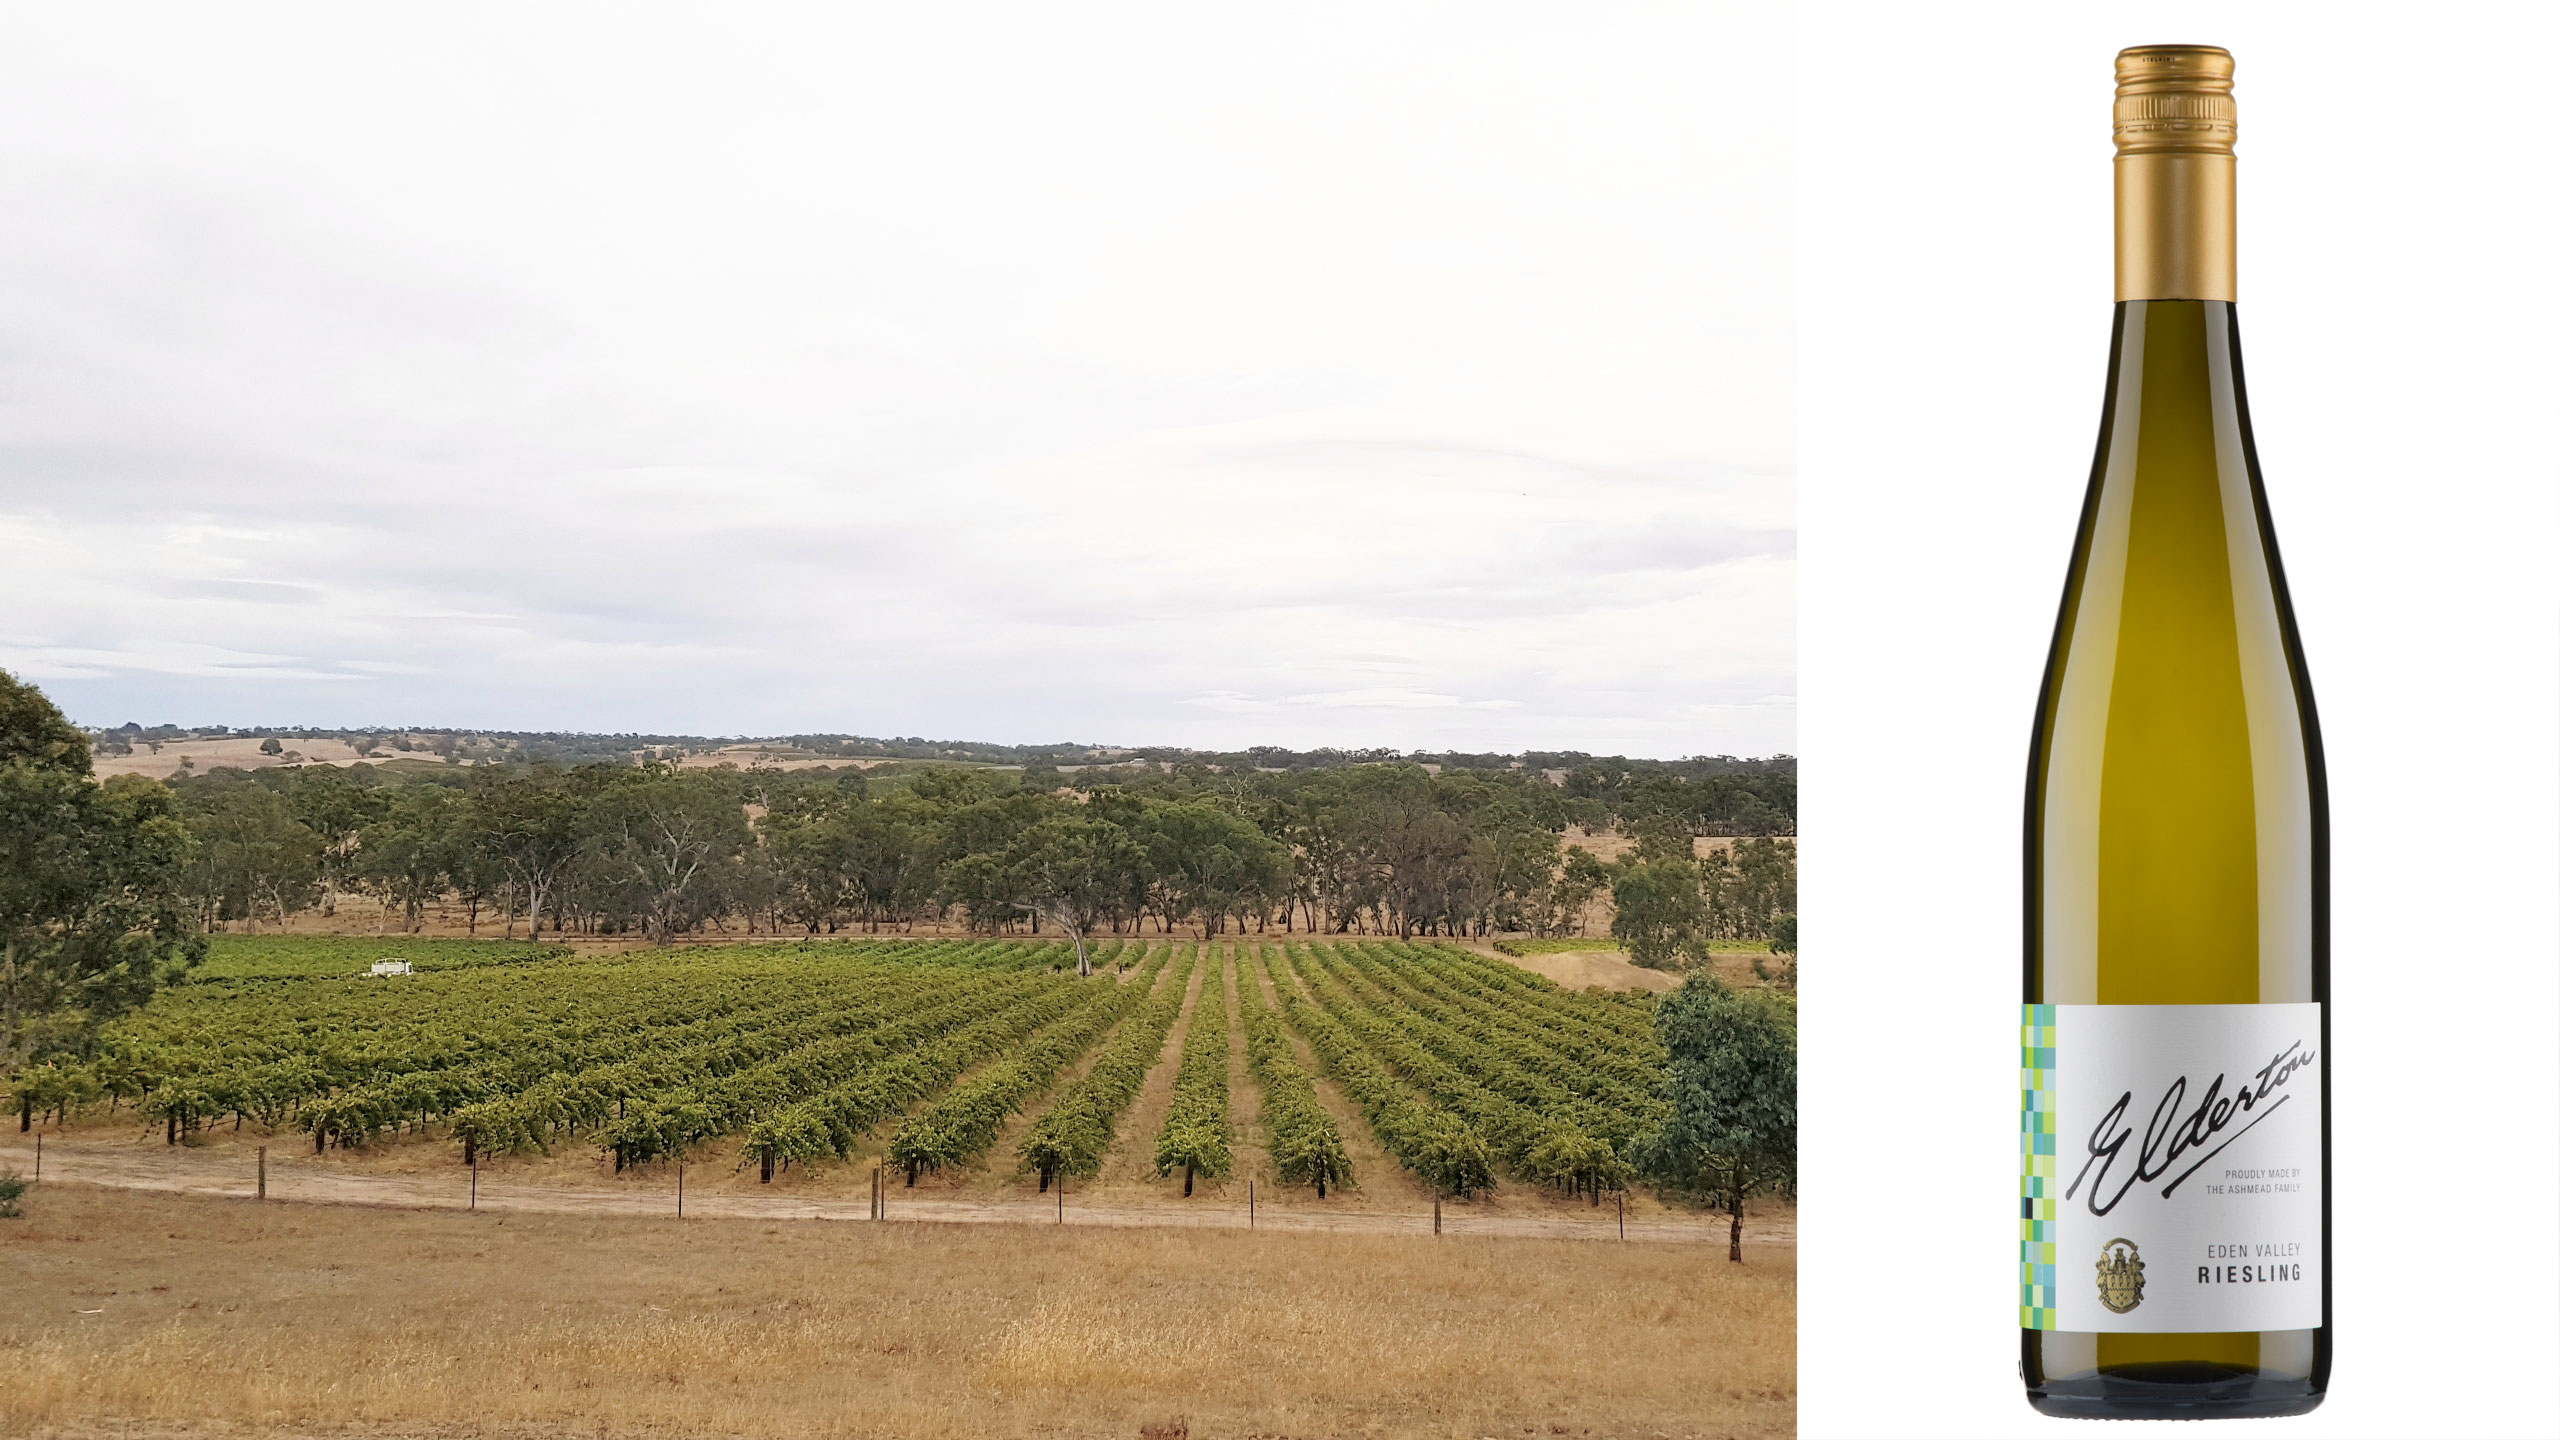 Eden Valley Riesling vineyard